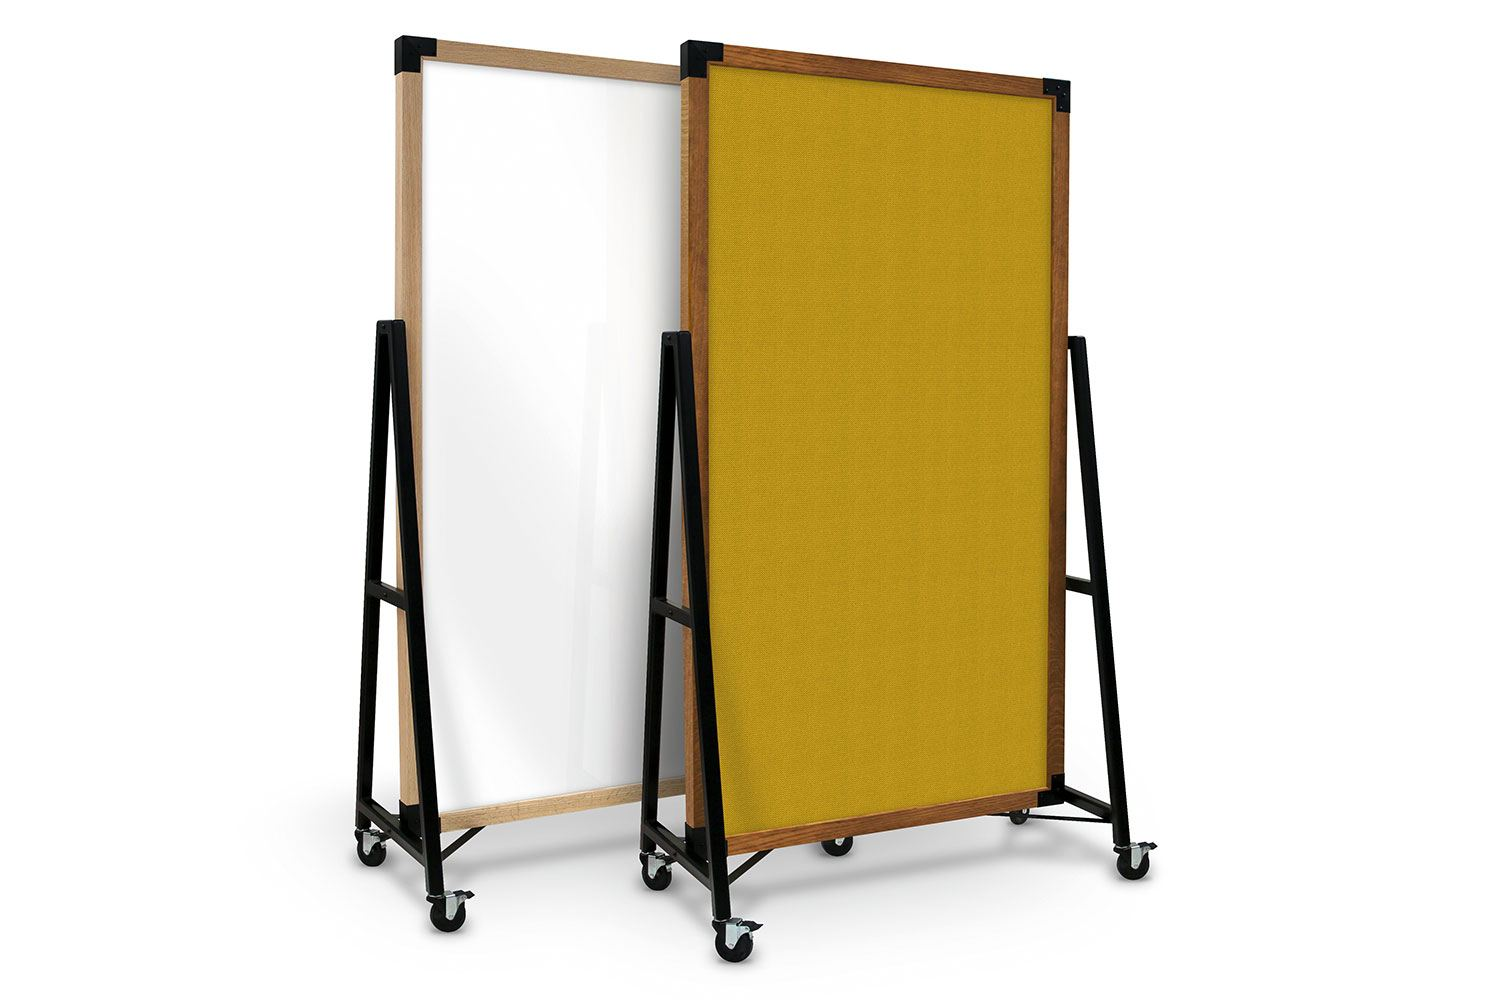 Prest Mobile Whiteboard